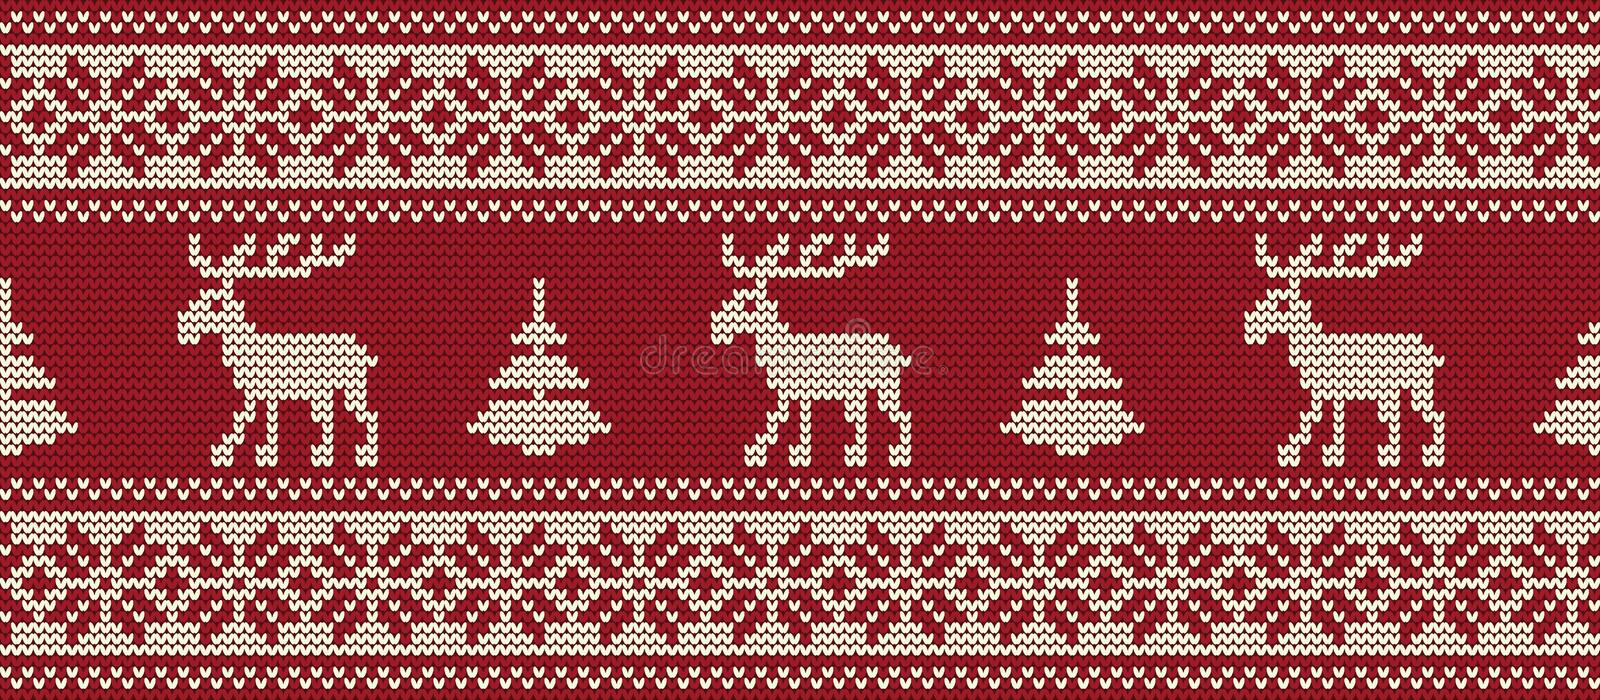 Knitted pattern with deers and fir trees on a red background. Seamless border vector illustration